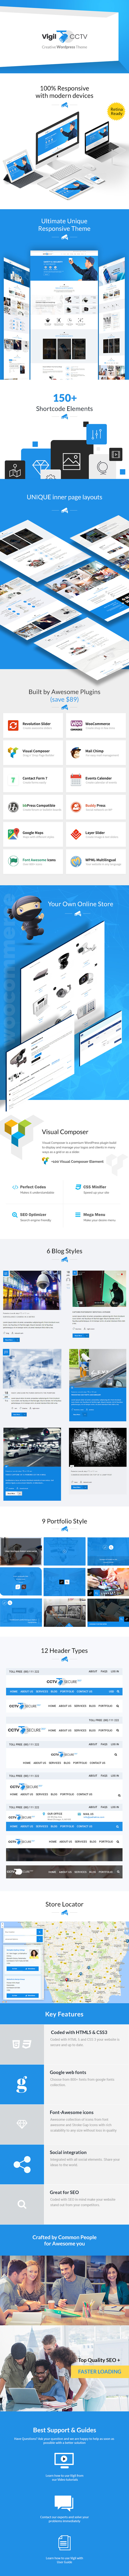 Vigil - CCTV, Security WordPress Theme - 1